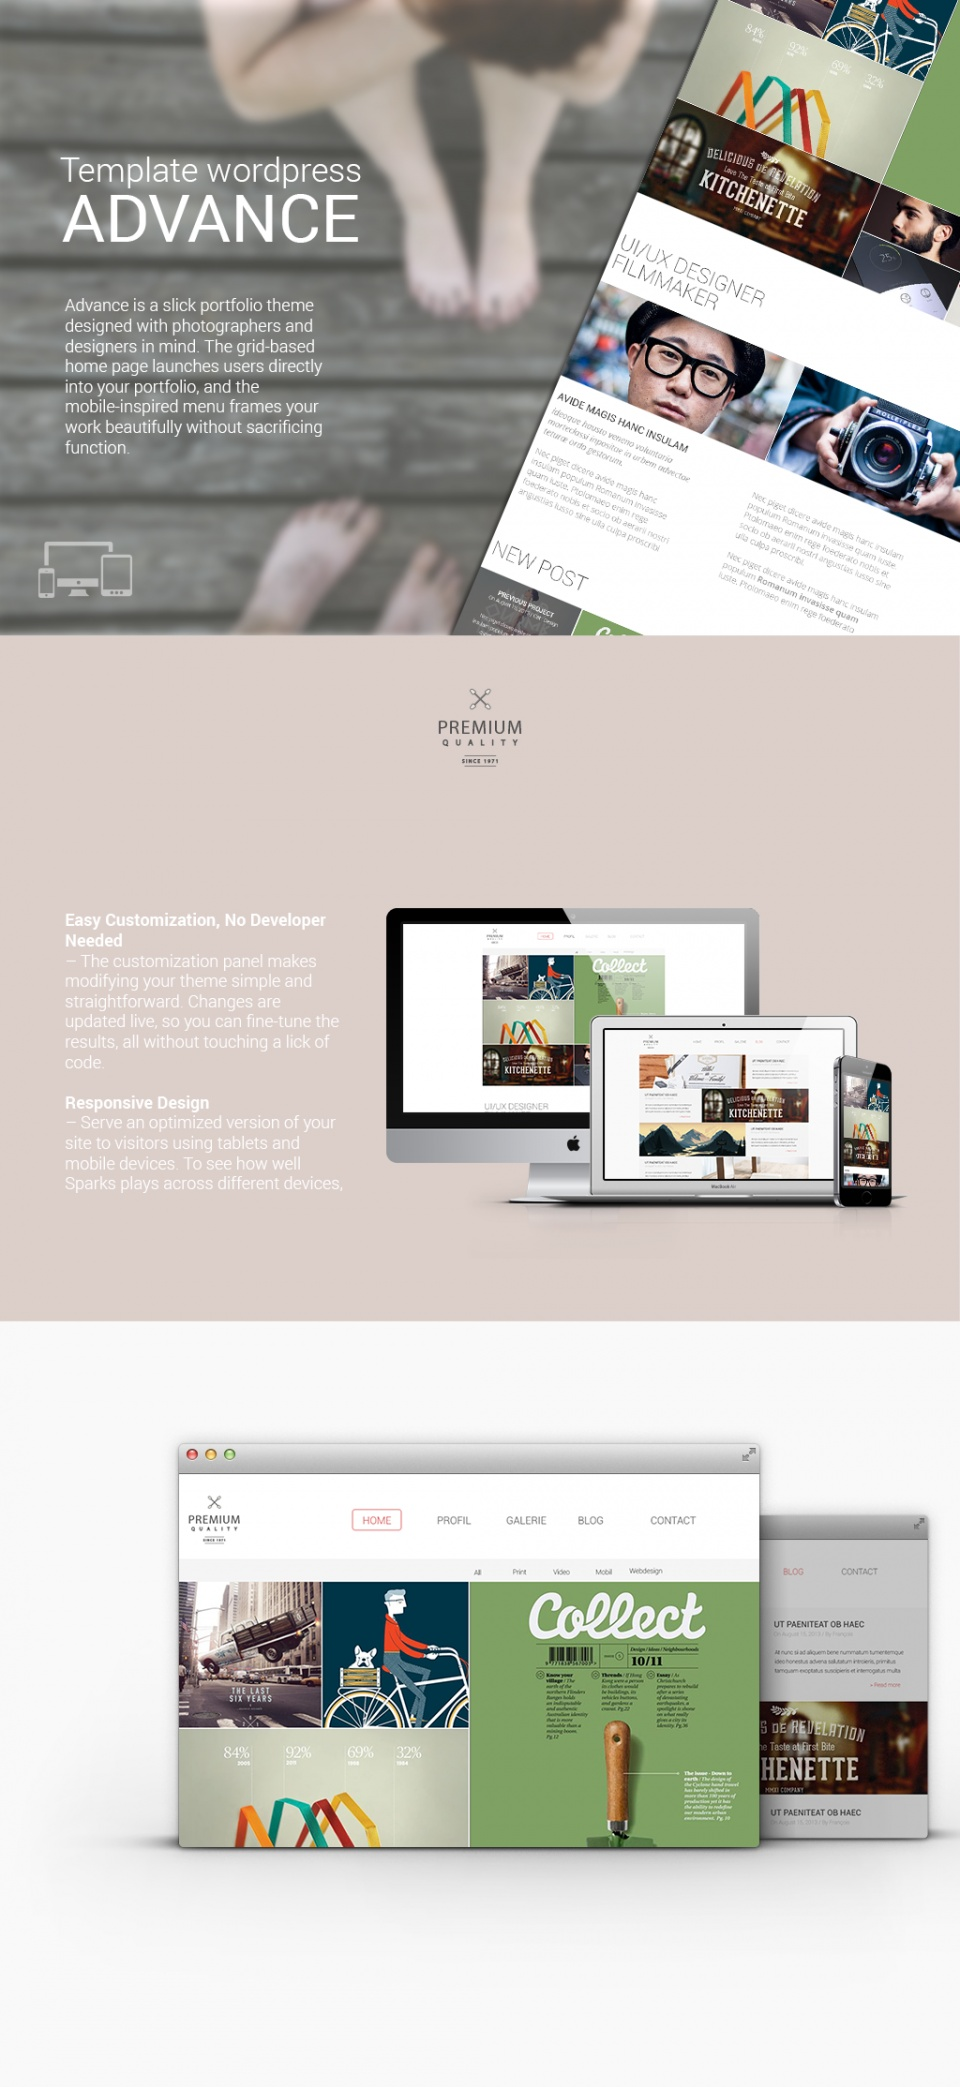 Theme wordpress advance